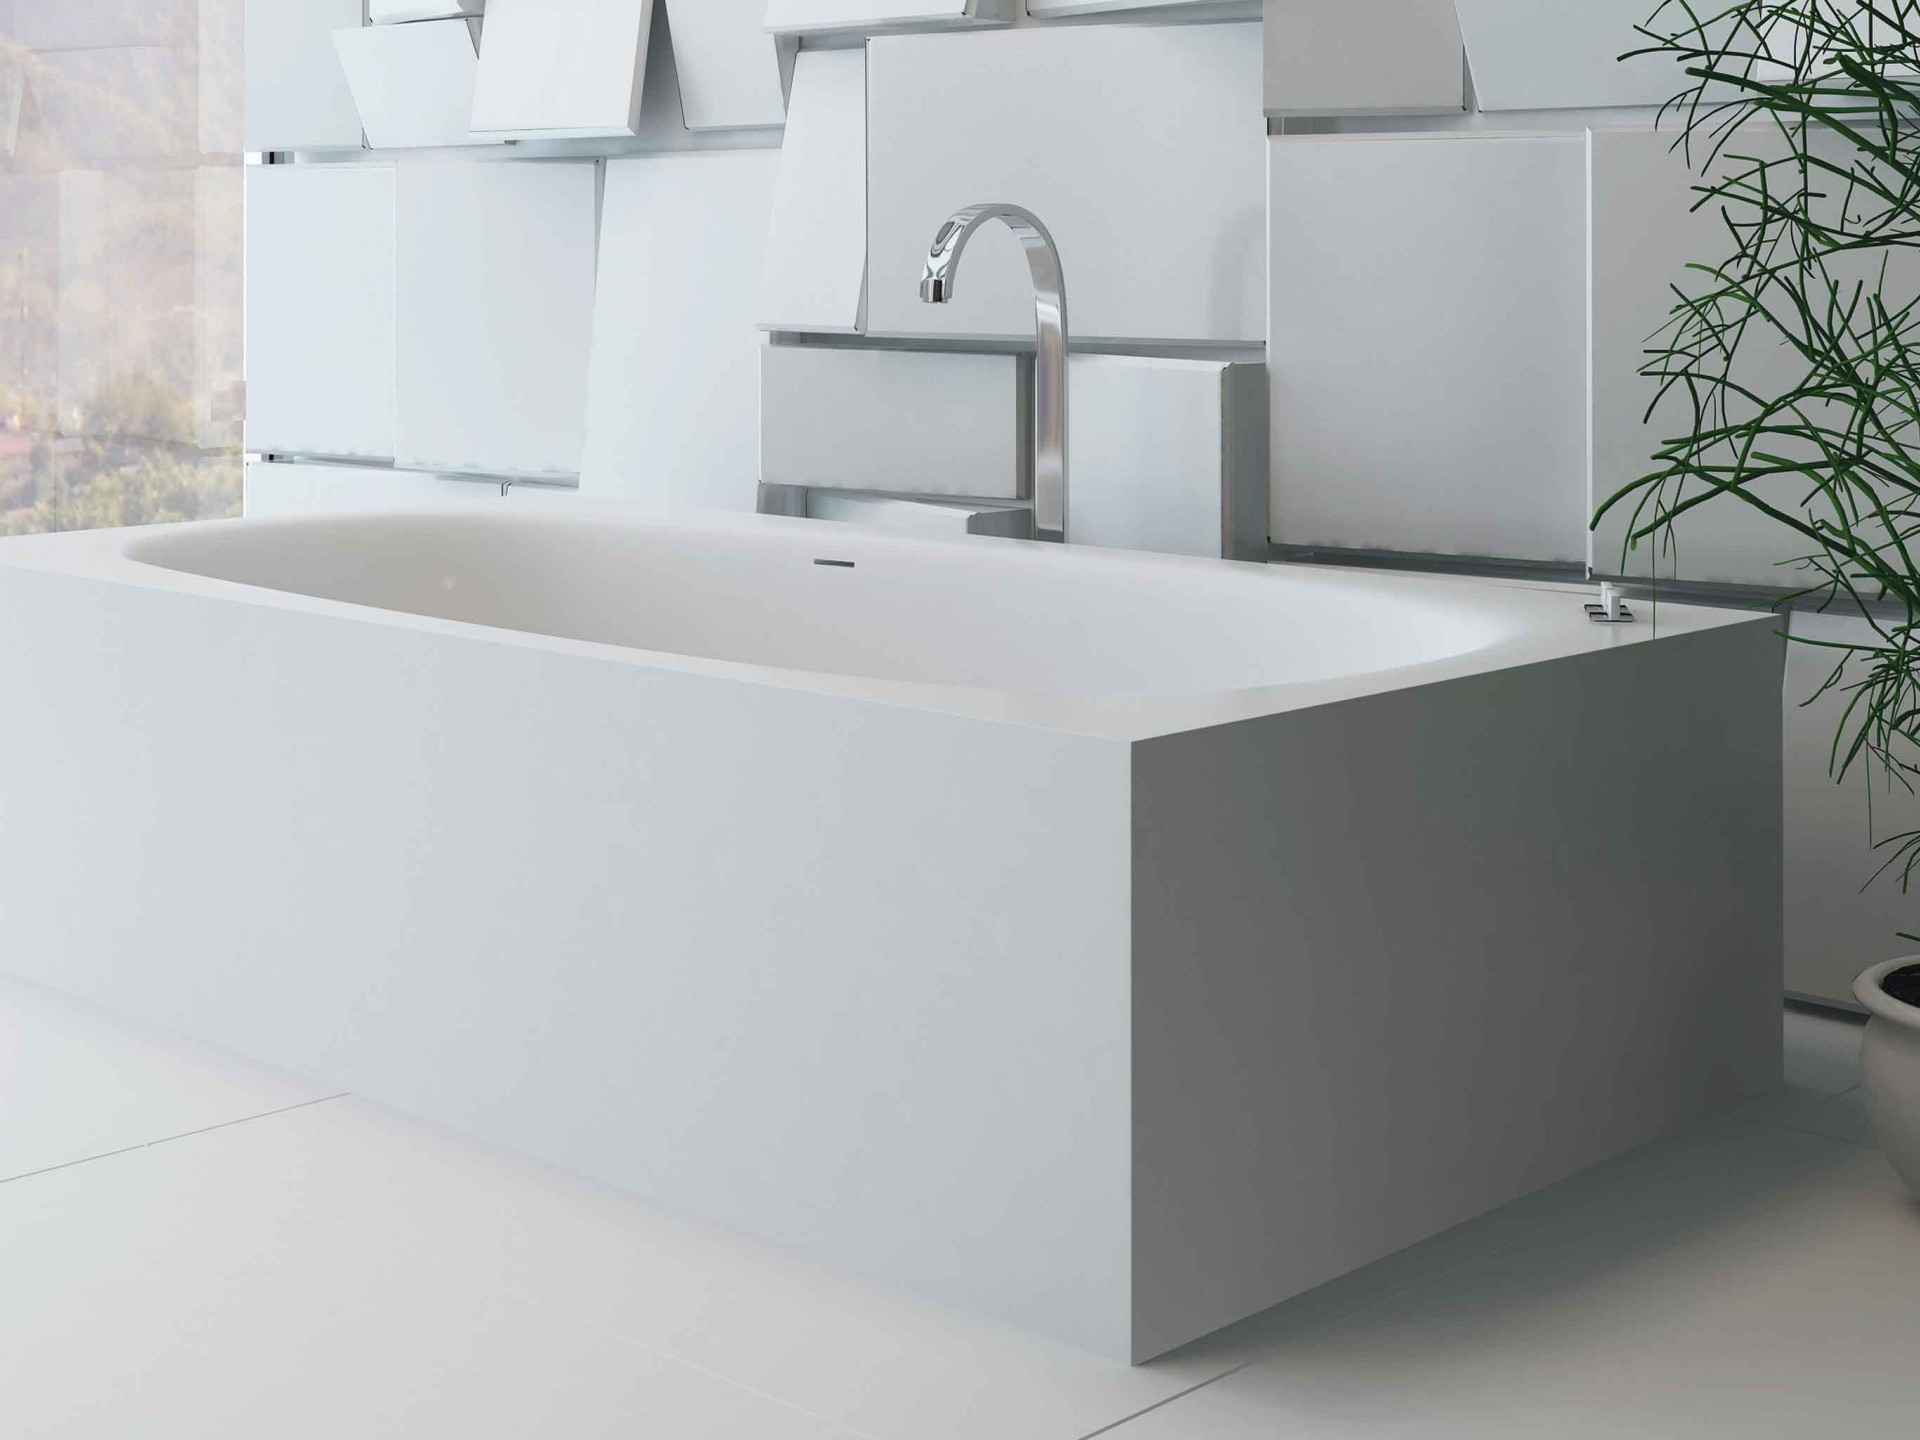 Tiles, Bathroom Ware & Lighting Franchise For Sale Northern Beaches.